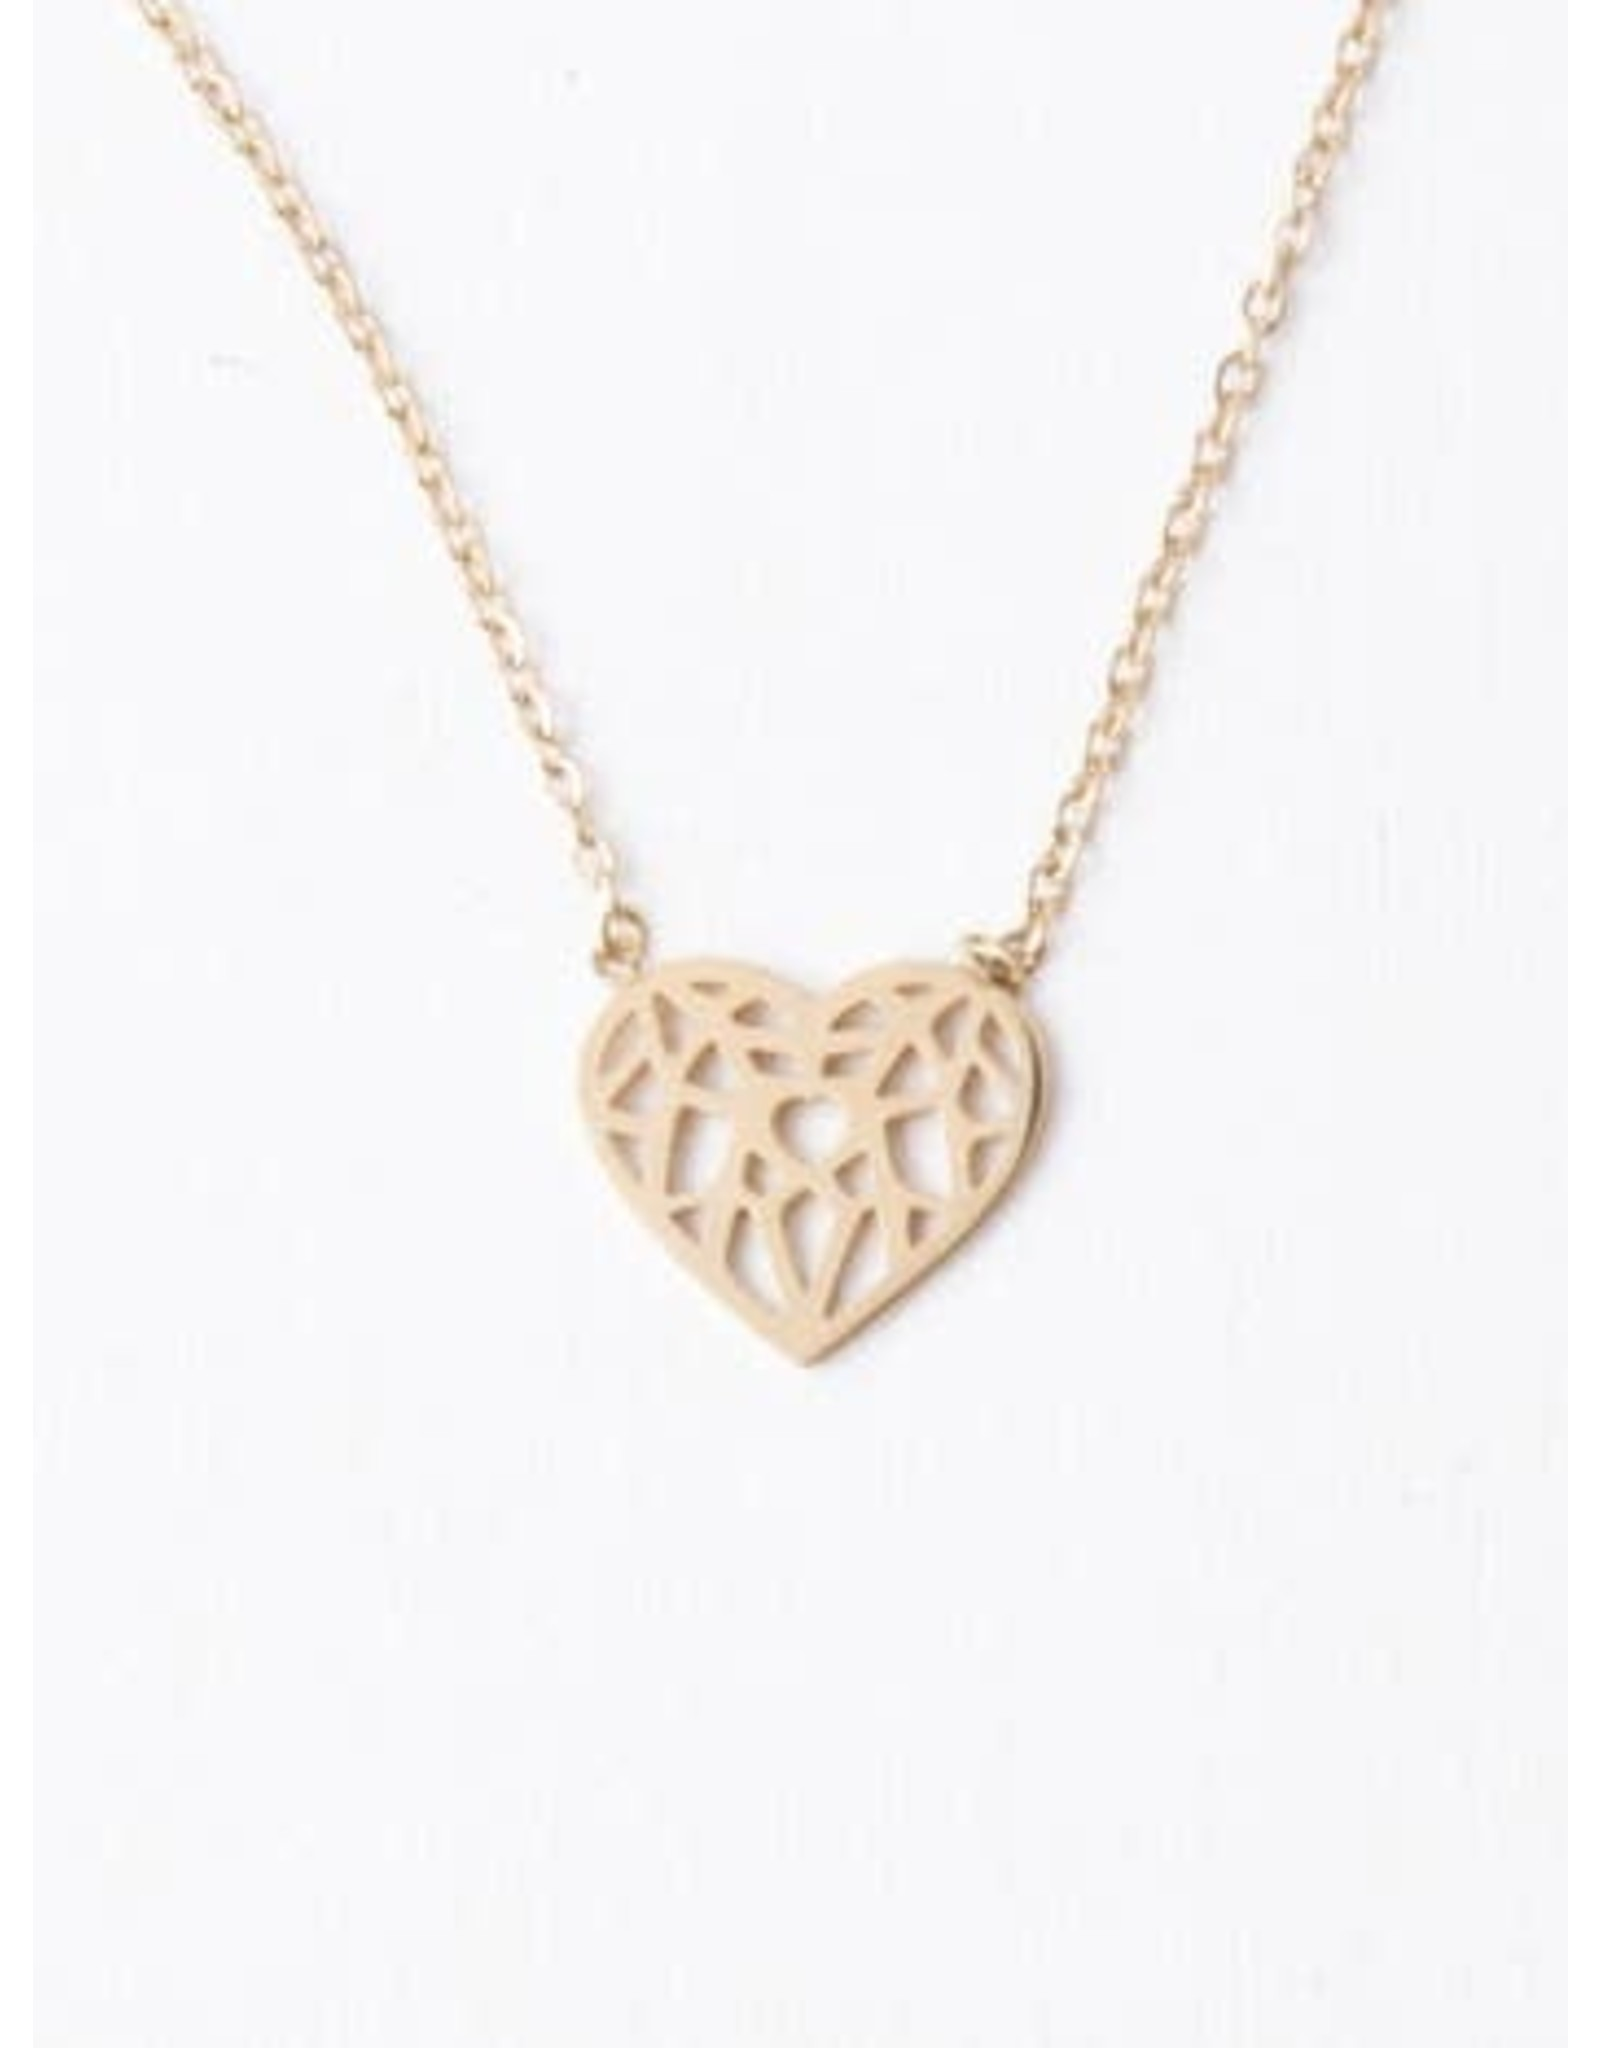 Ling Gold Heart Filigree Necklace